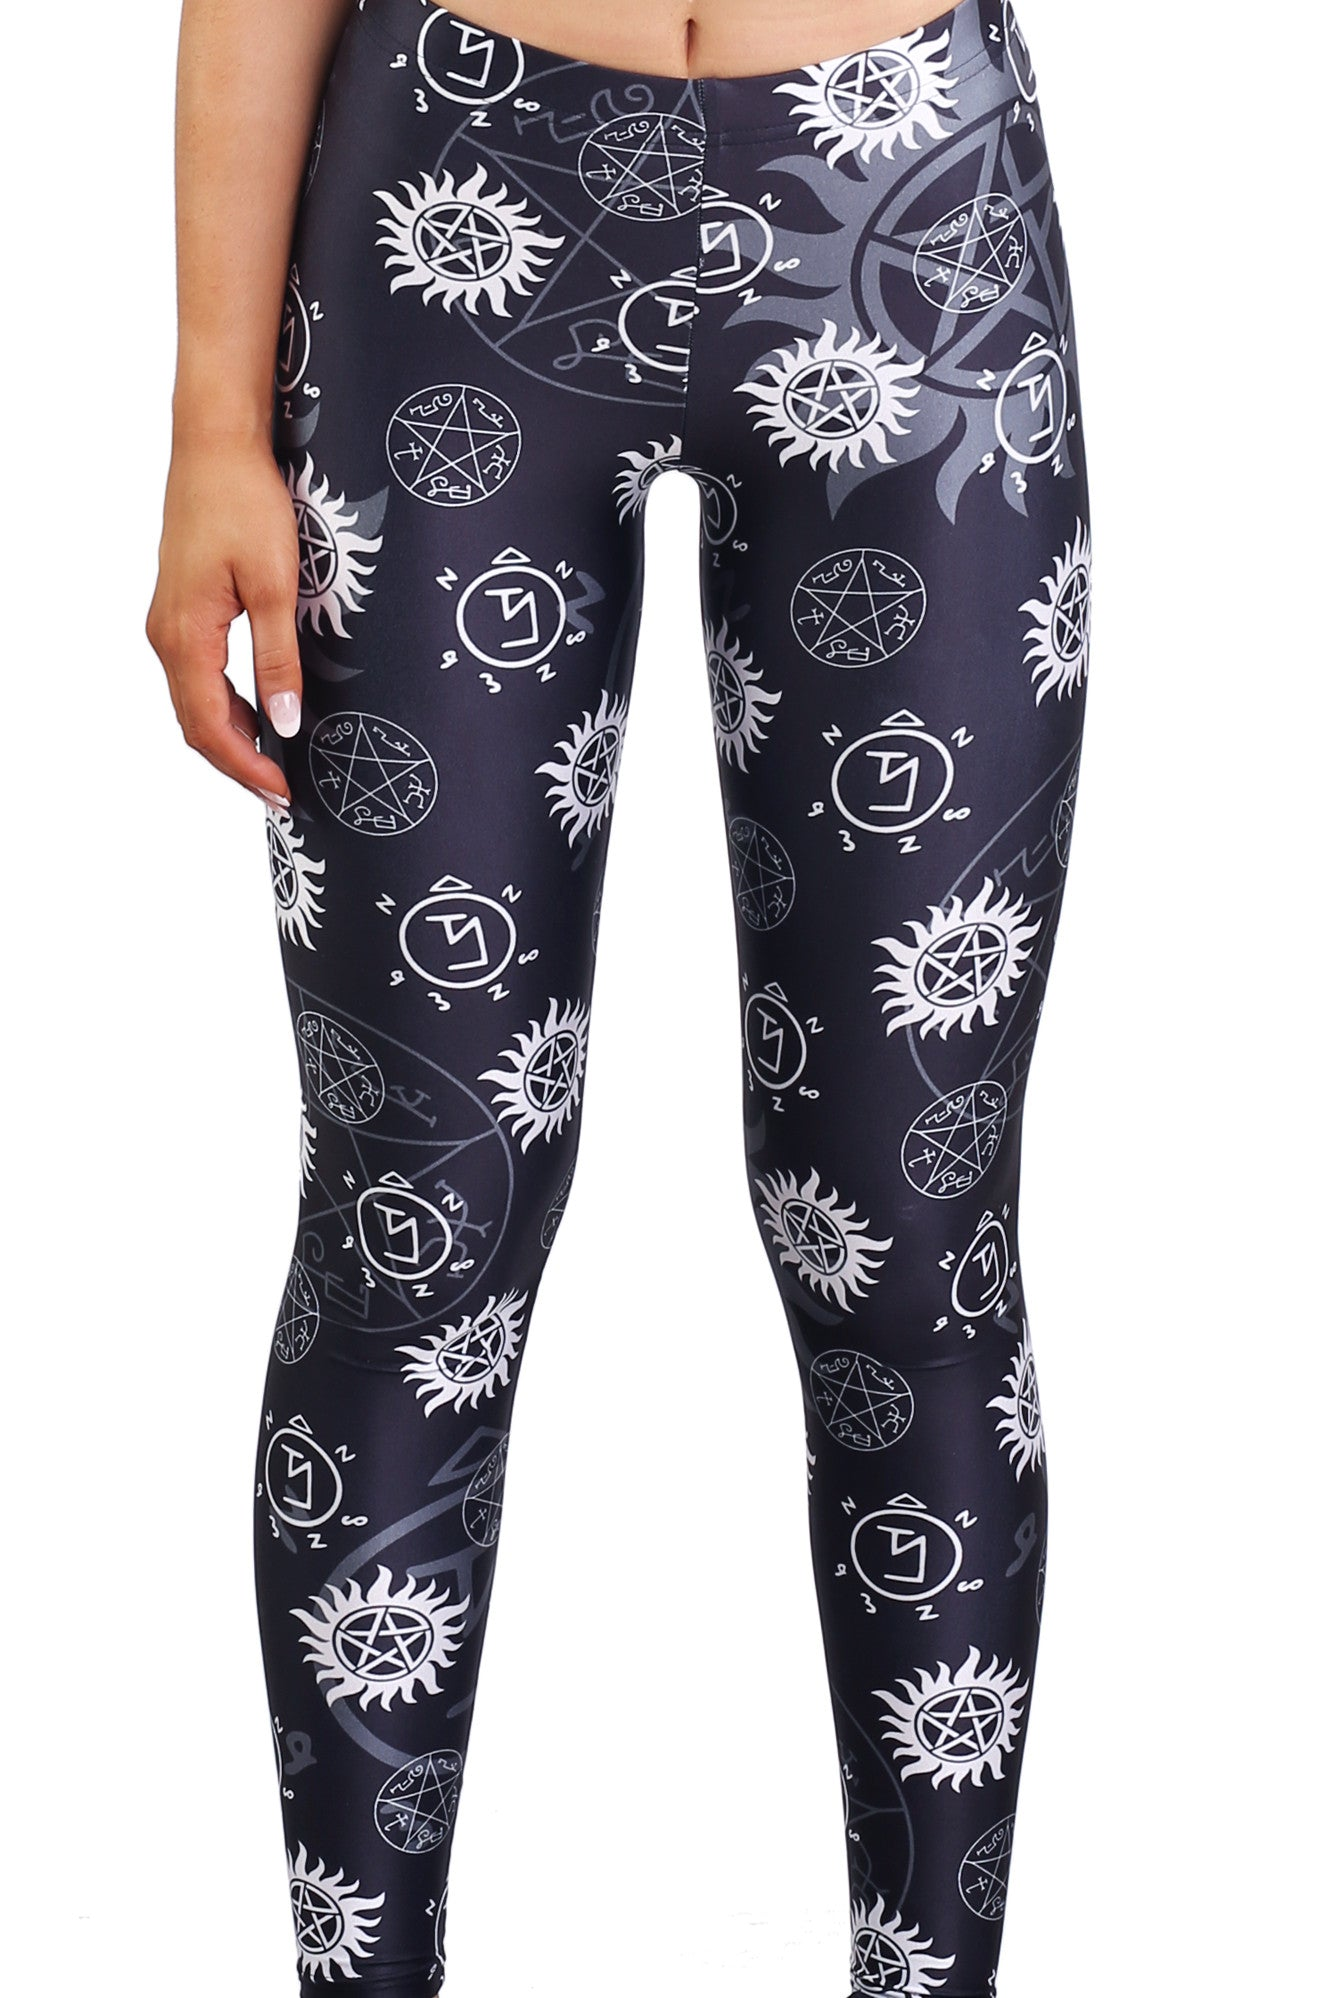 Supernatural Leggings